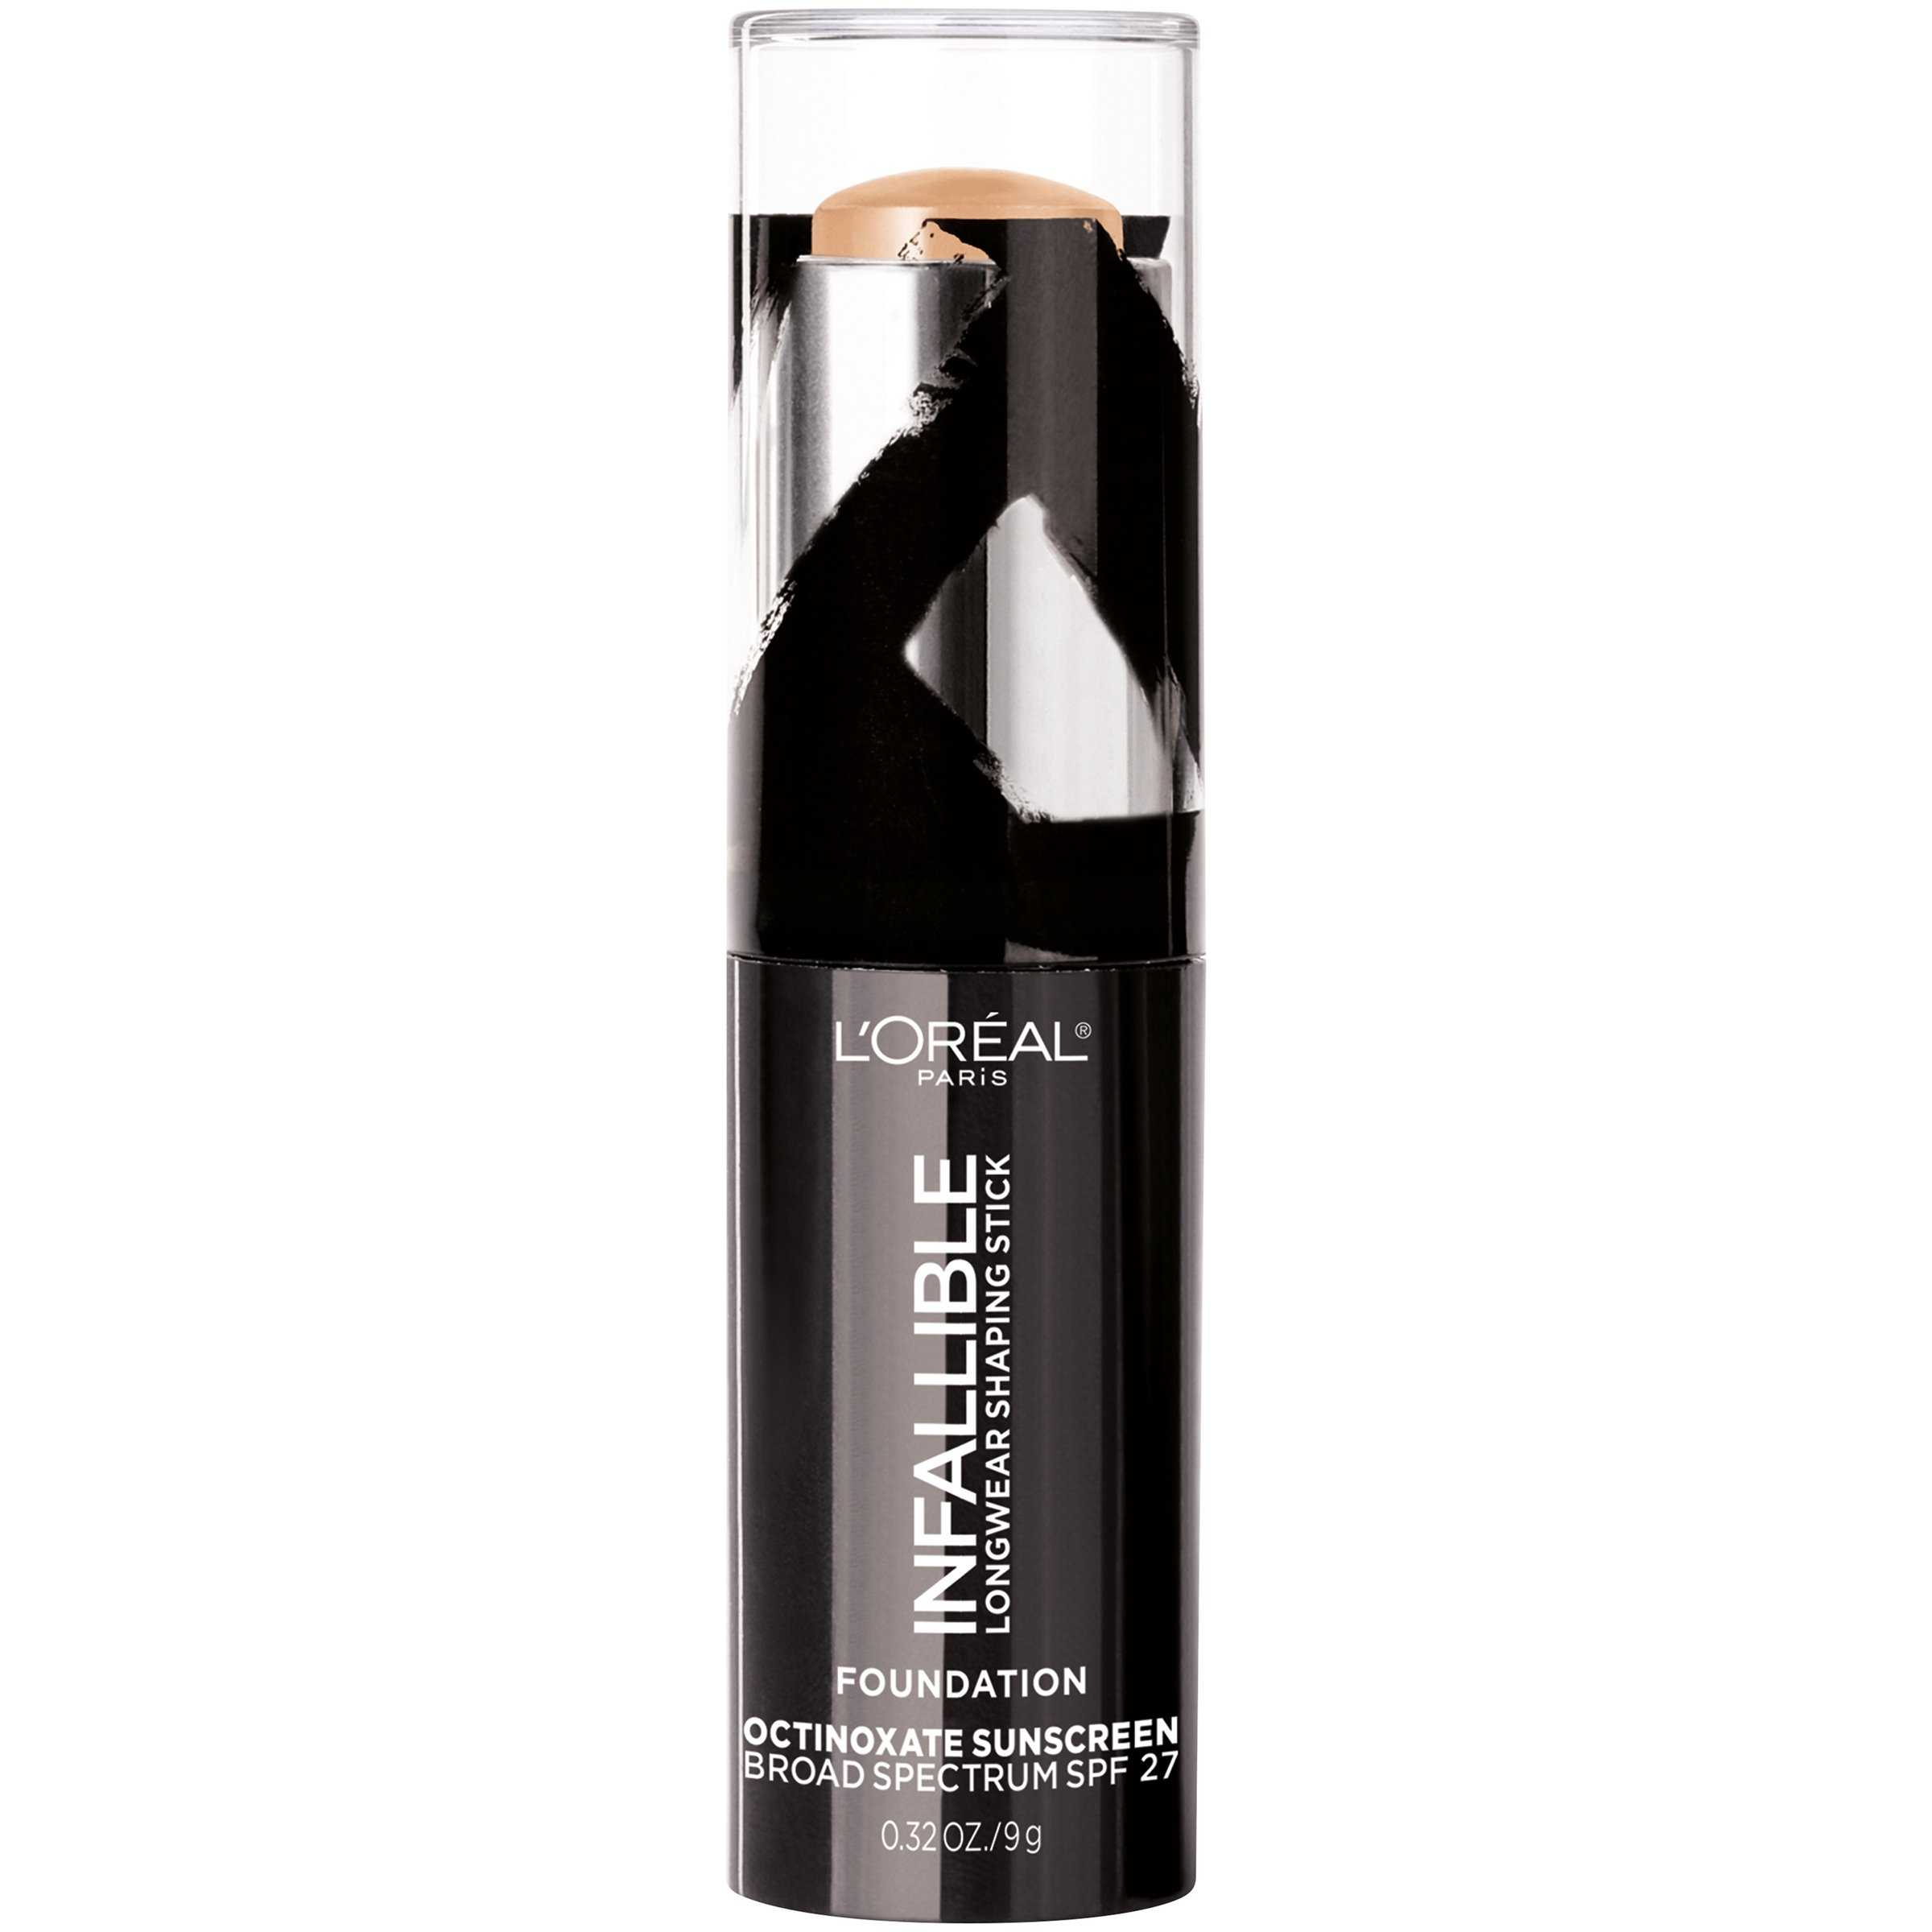 fb1d8be675b1 L'Oreal Paris Makeup Infallible Longwear Foundation Shaping Stick, Up to  24hr Wear, Medium to Full Coverage Cream Foundation Stick, 403 Buff, 0.3 oz.